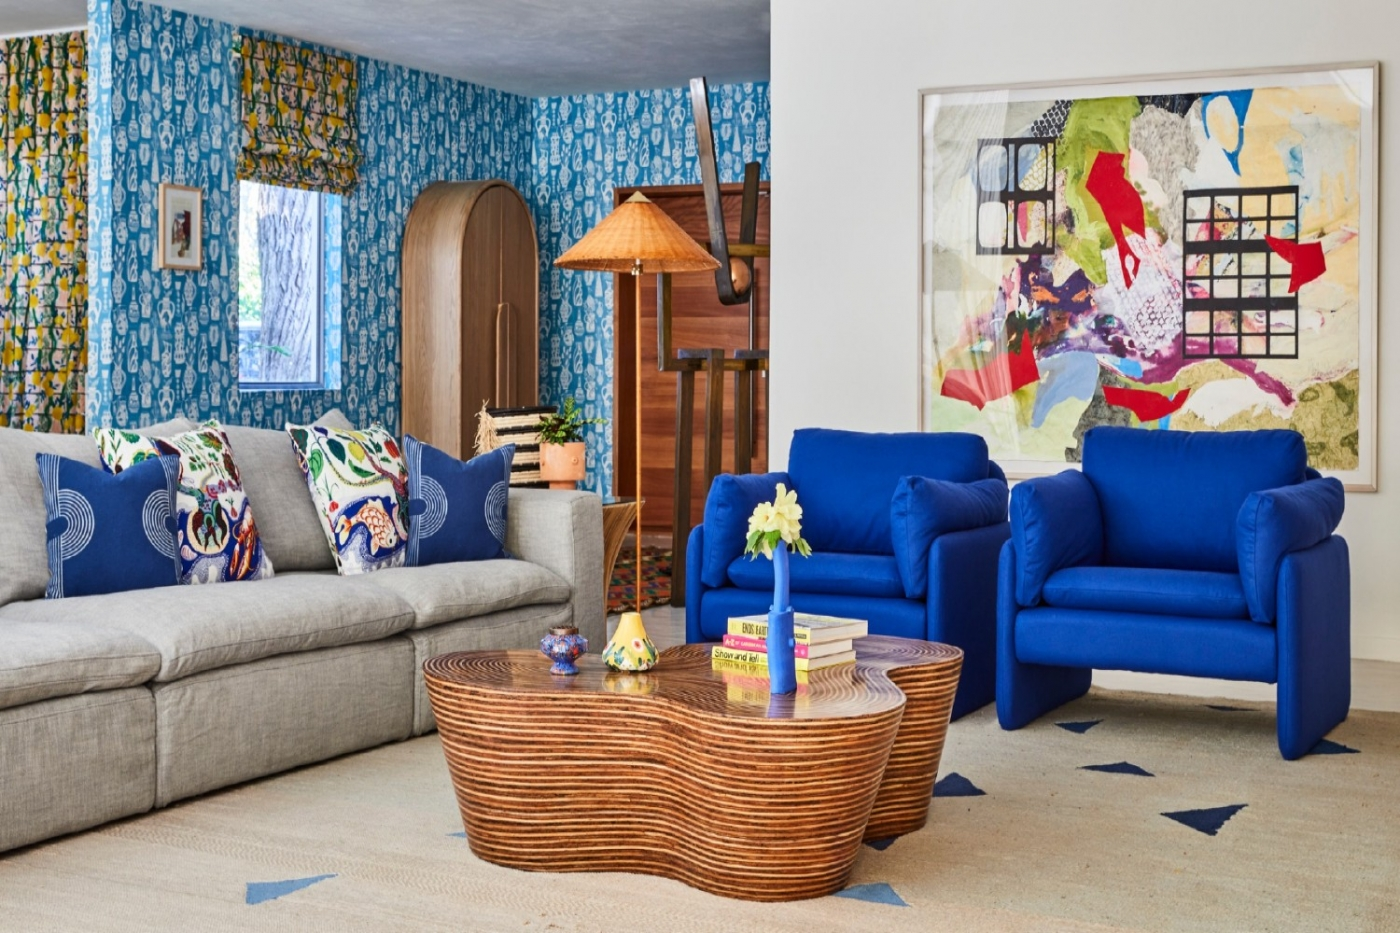 jennifer bunsa jennifer bunsa Jennifer Bunsa Makes Everyone Fall In Love With This Colorful Home ft1 1 1400x933